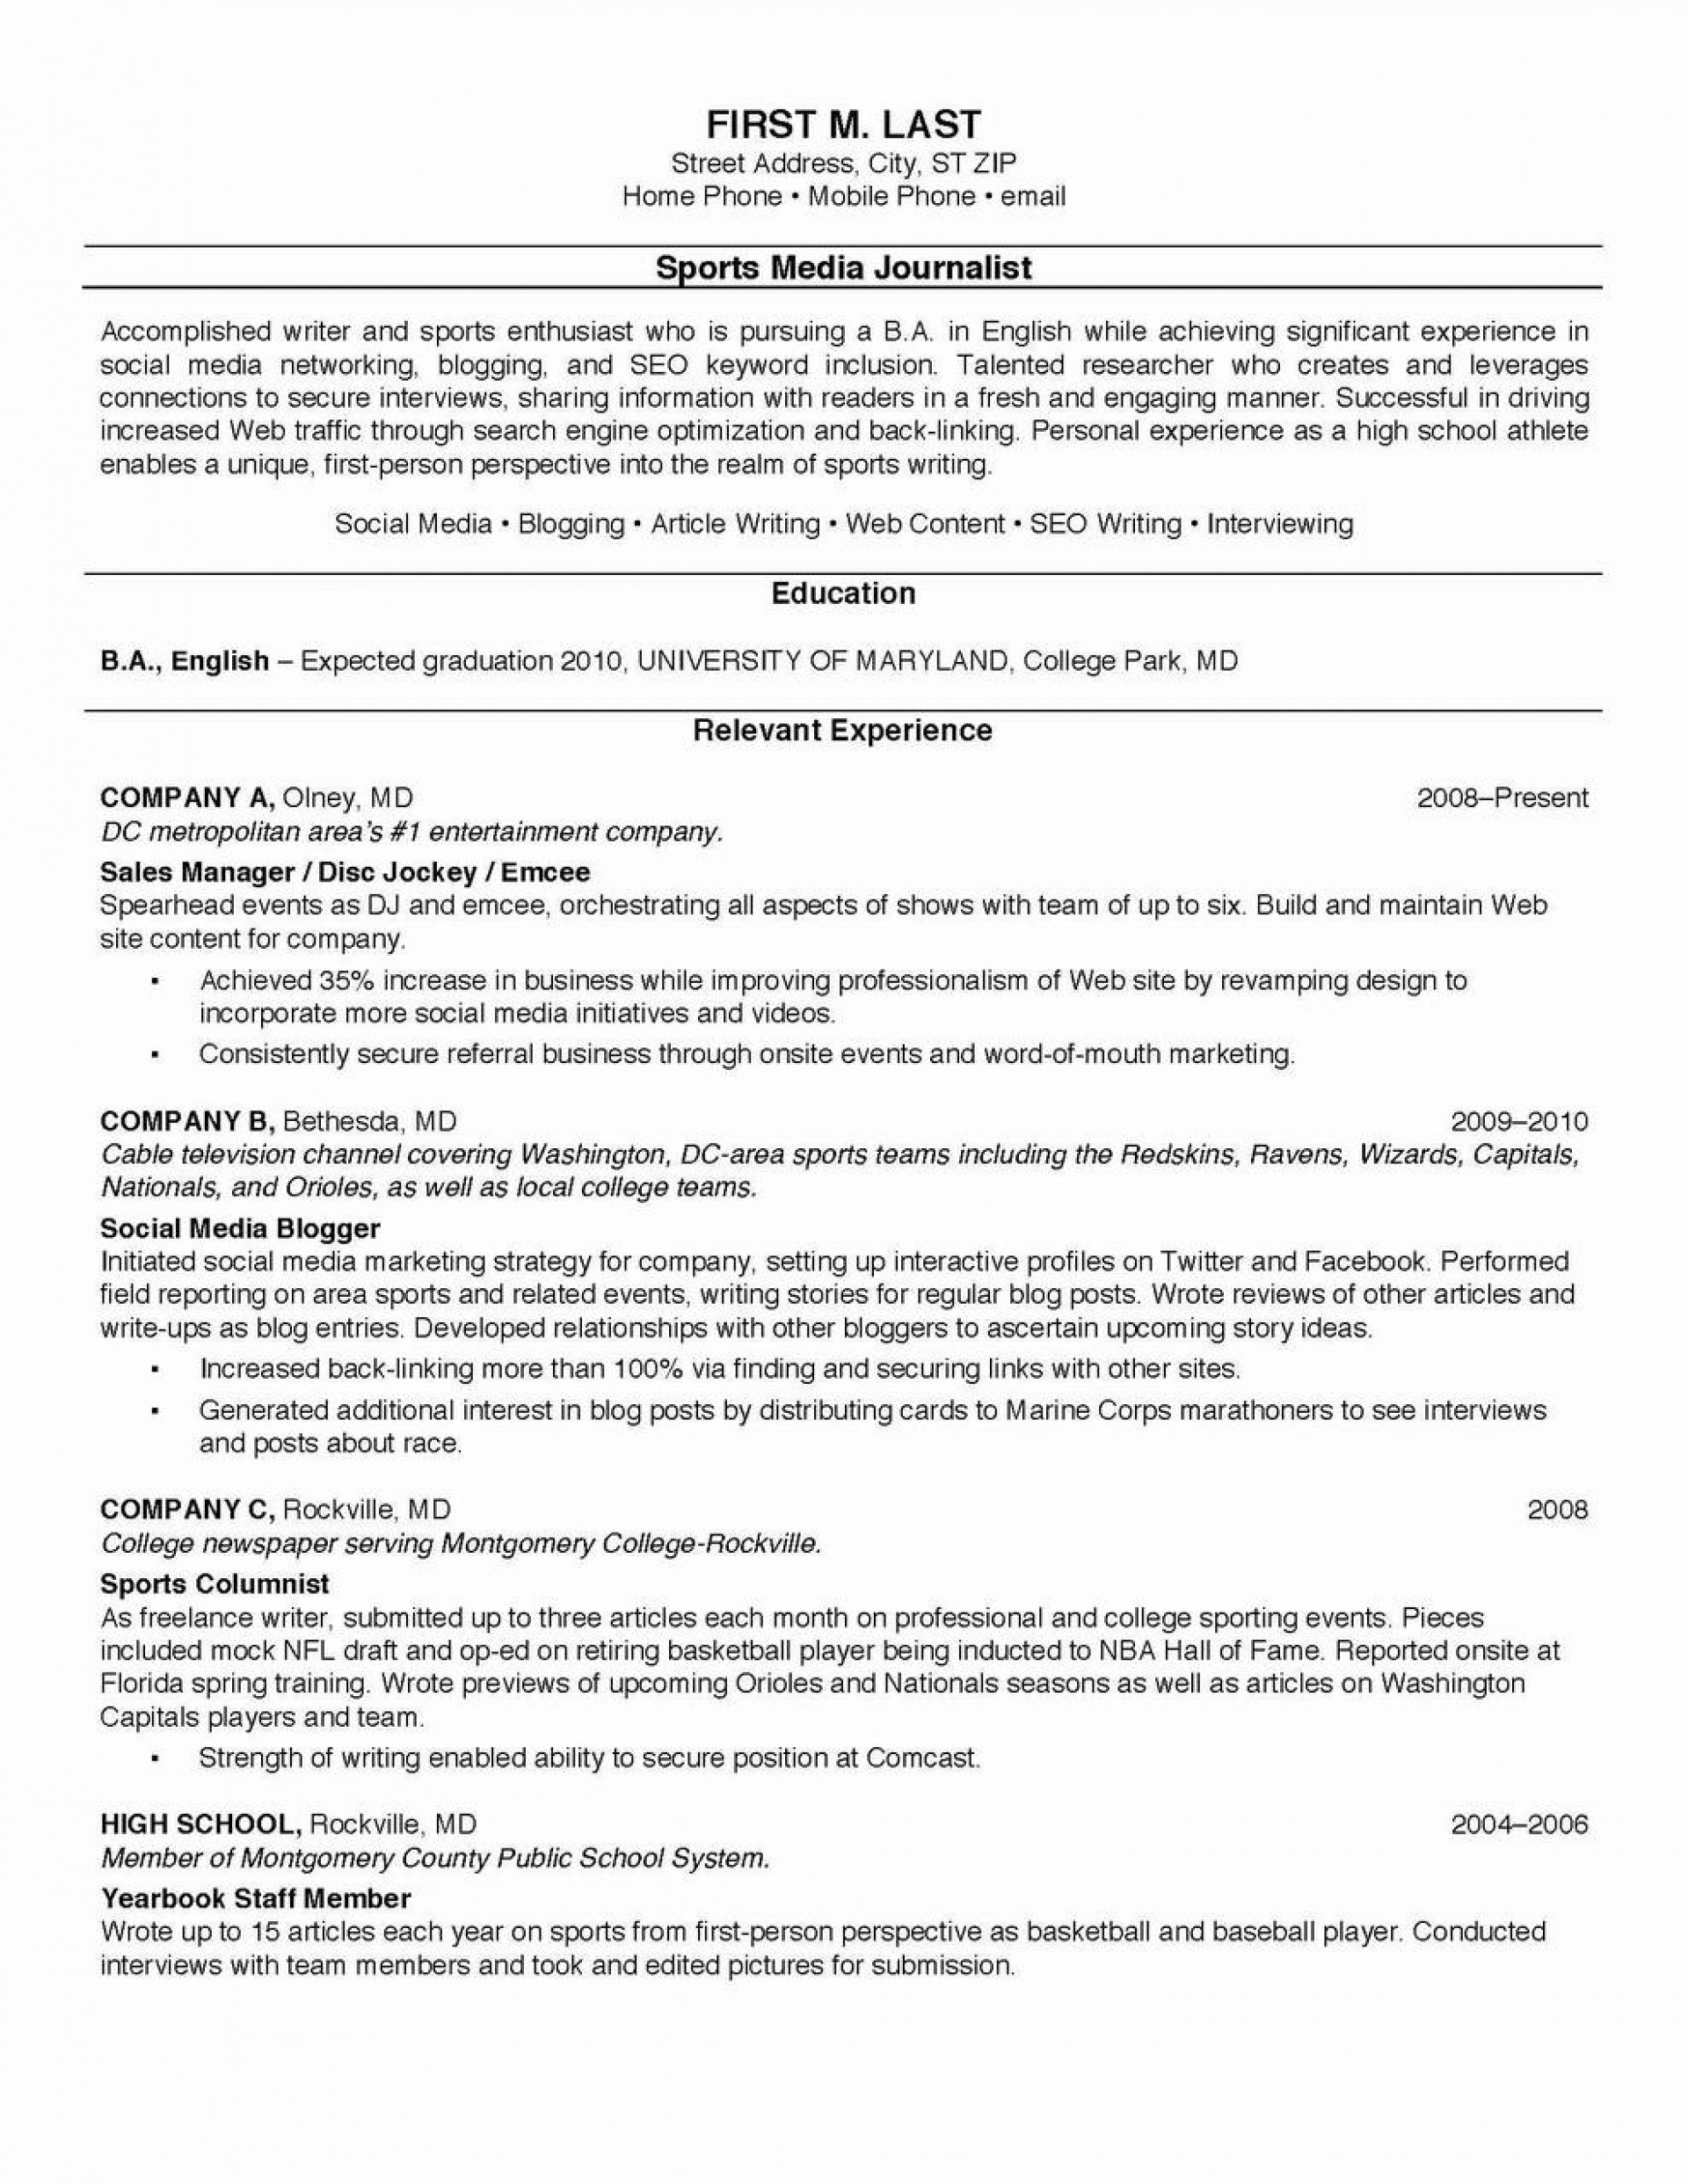 004 Essay Example What To Put On College Resume Inspirational Persuasive Should Education Free Argumentative Org Not For Everyone Tuition Community Attend Impressive Be 1920